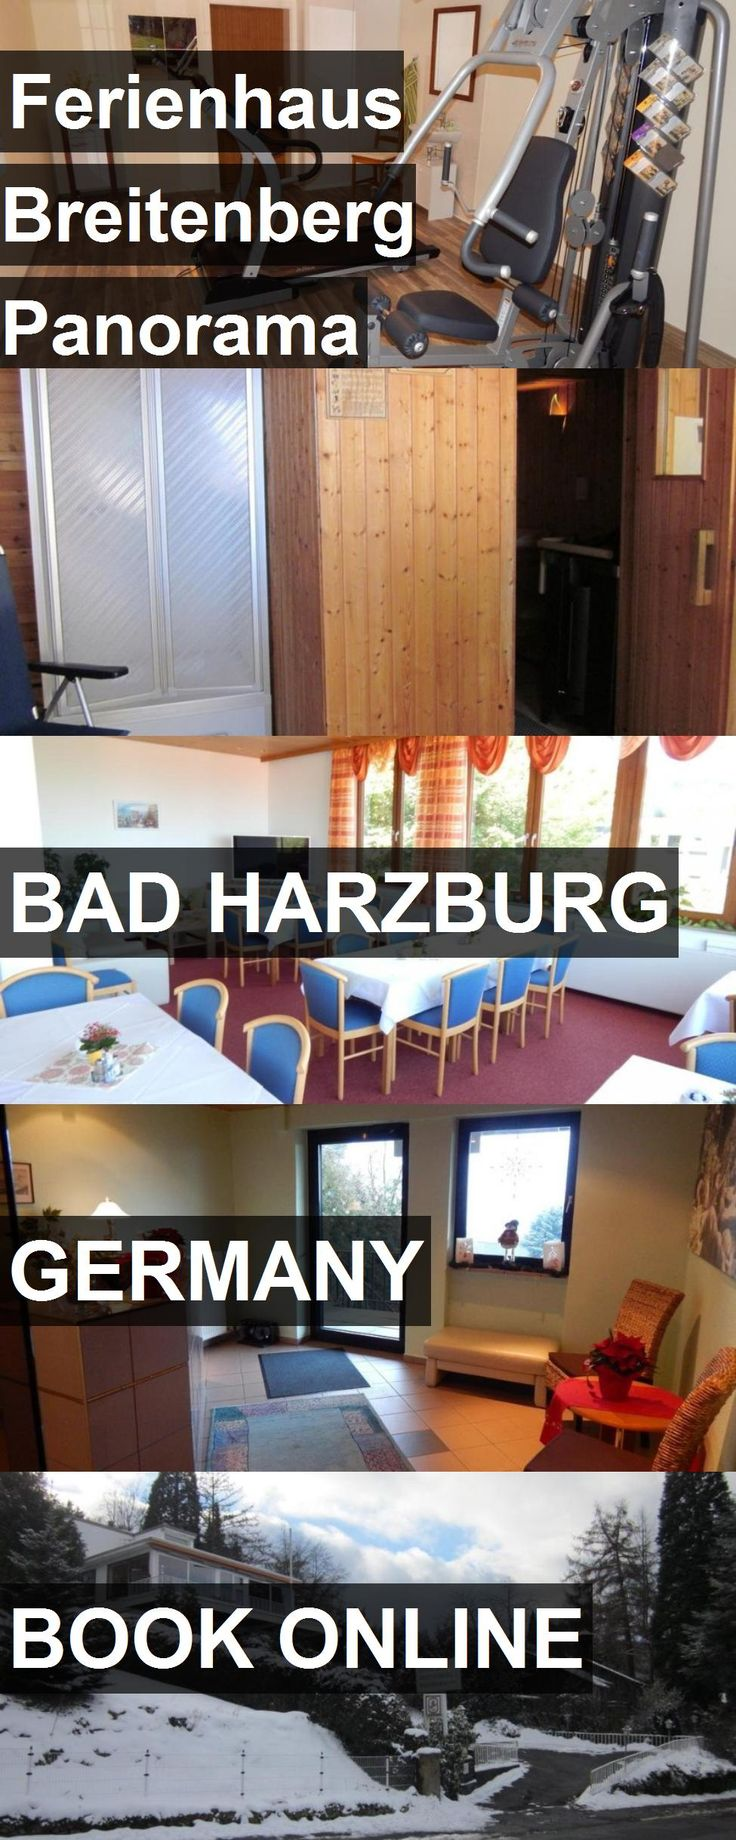 Hotel Ferienhaus Breitenberg Panorama in Bad Harzburg, Germany. For more information, photos, reviews and best prices please follow the link. #Germany #BadHarzburg #FerienhausBreitenbergPanorama #hotel #travel #vacation